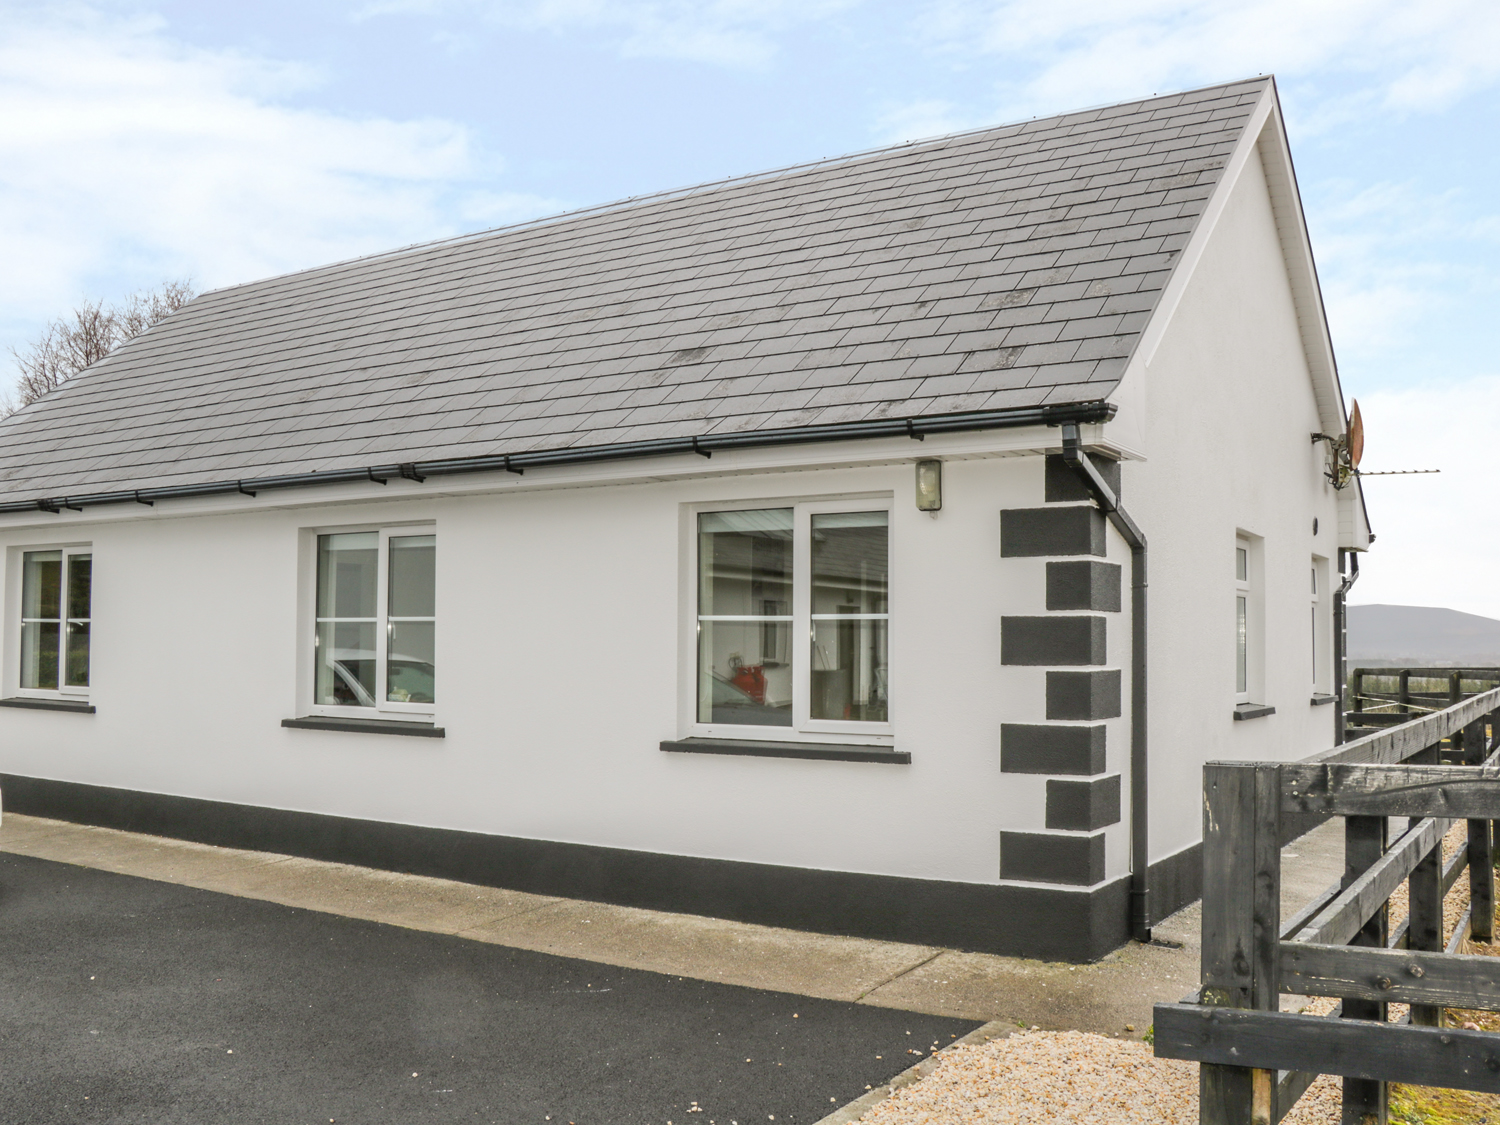 Kilronan Ranch and Tuition Centre, County Roscommon